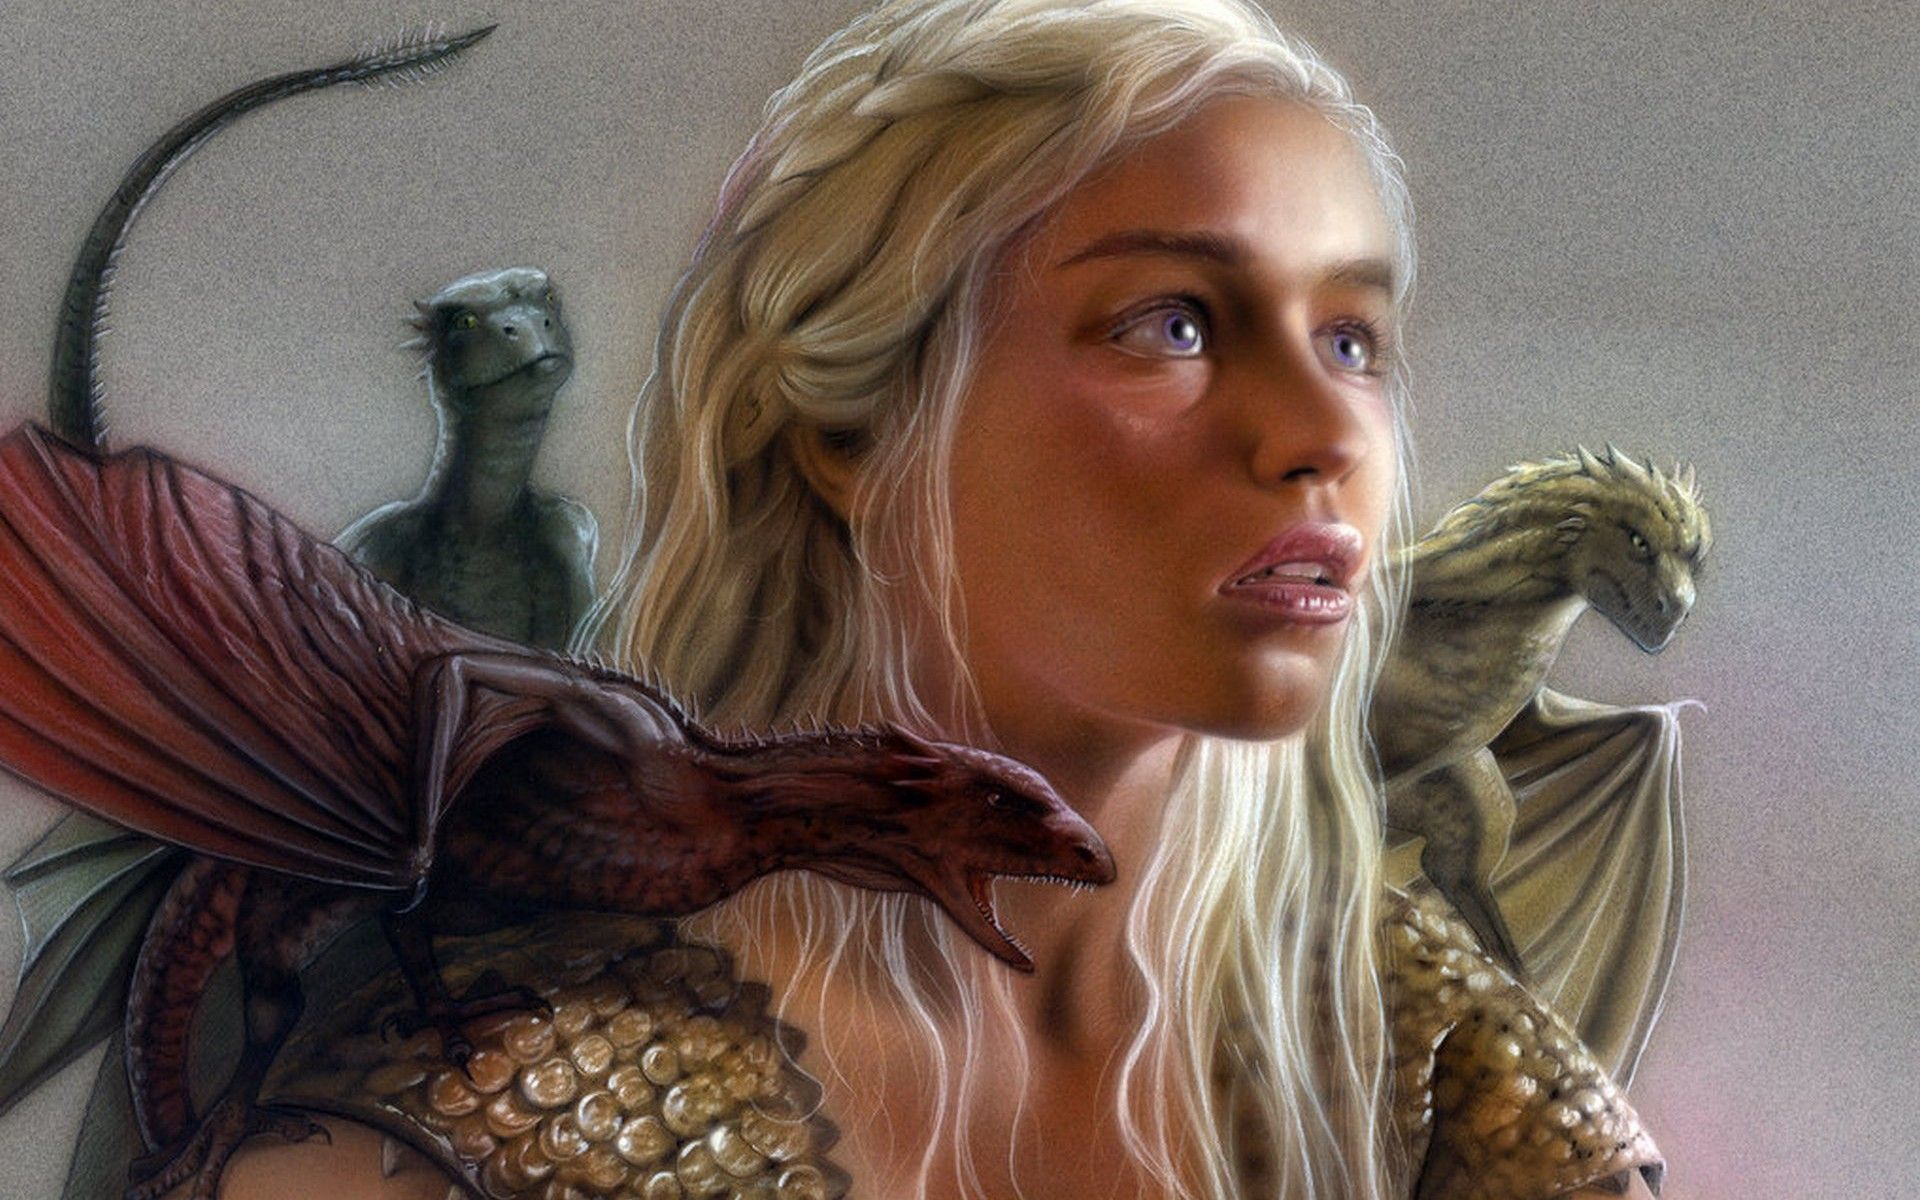 Dragons game of thrones colors - Pin By Melissa Lee Miguel On Desktops Pinterest Dragons And Wallpaper